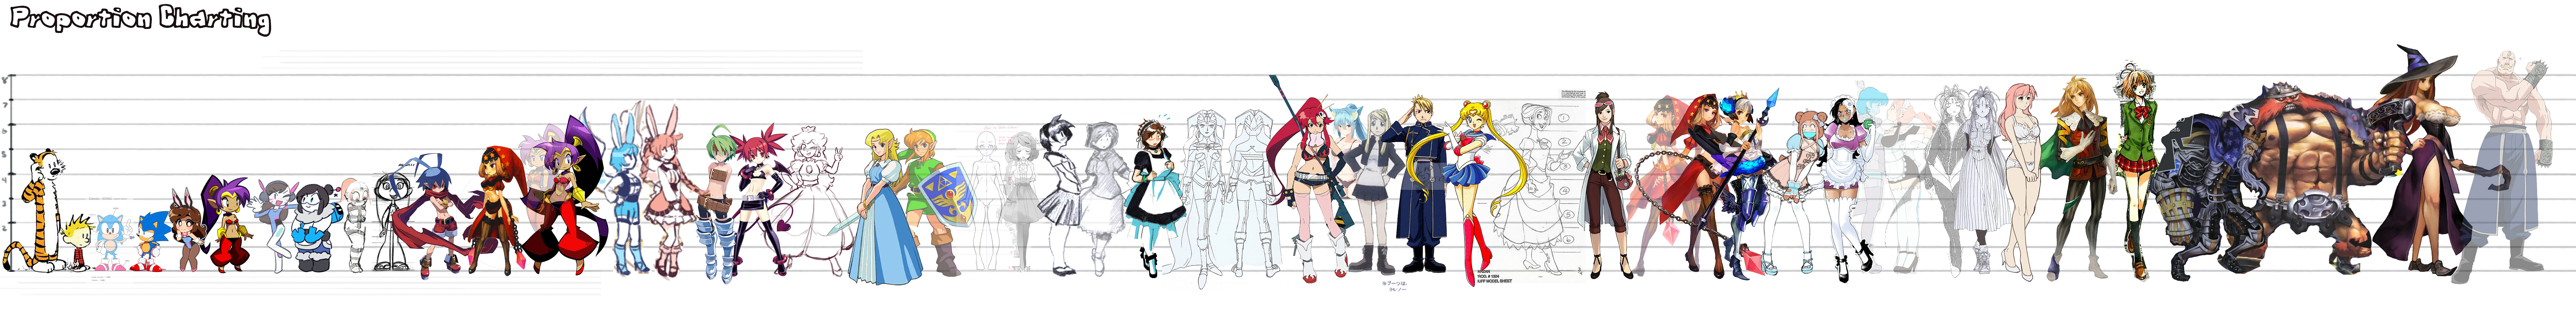 Proportion Charting by HeartGear